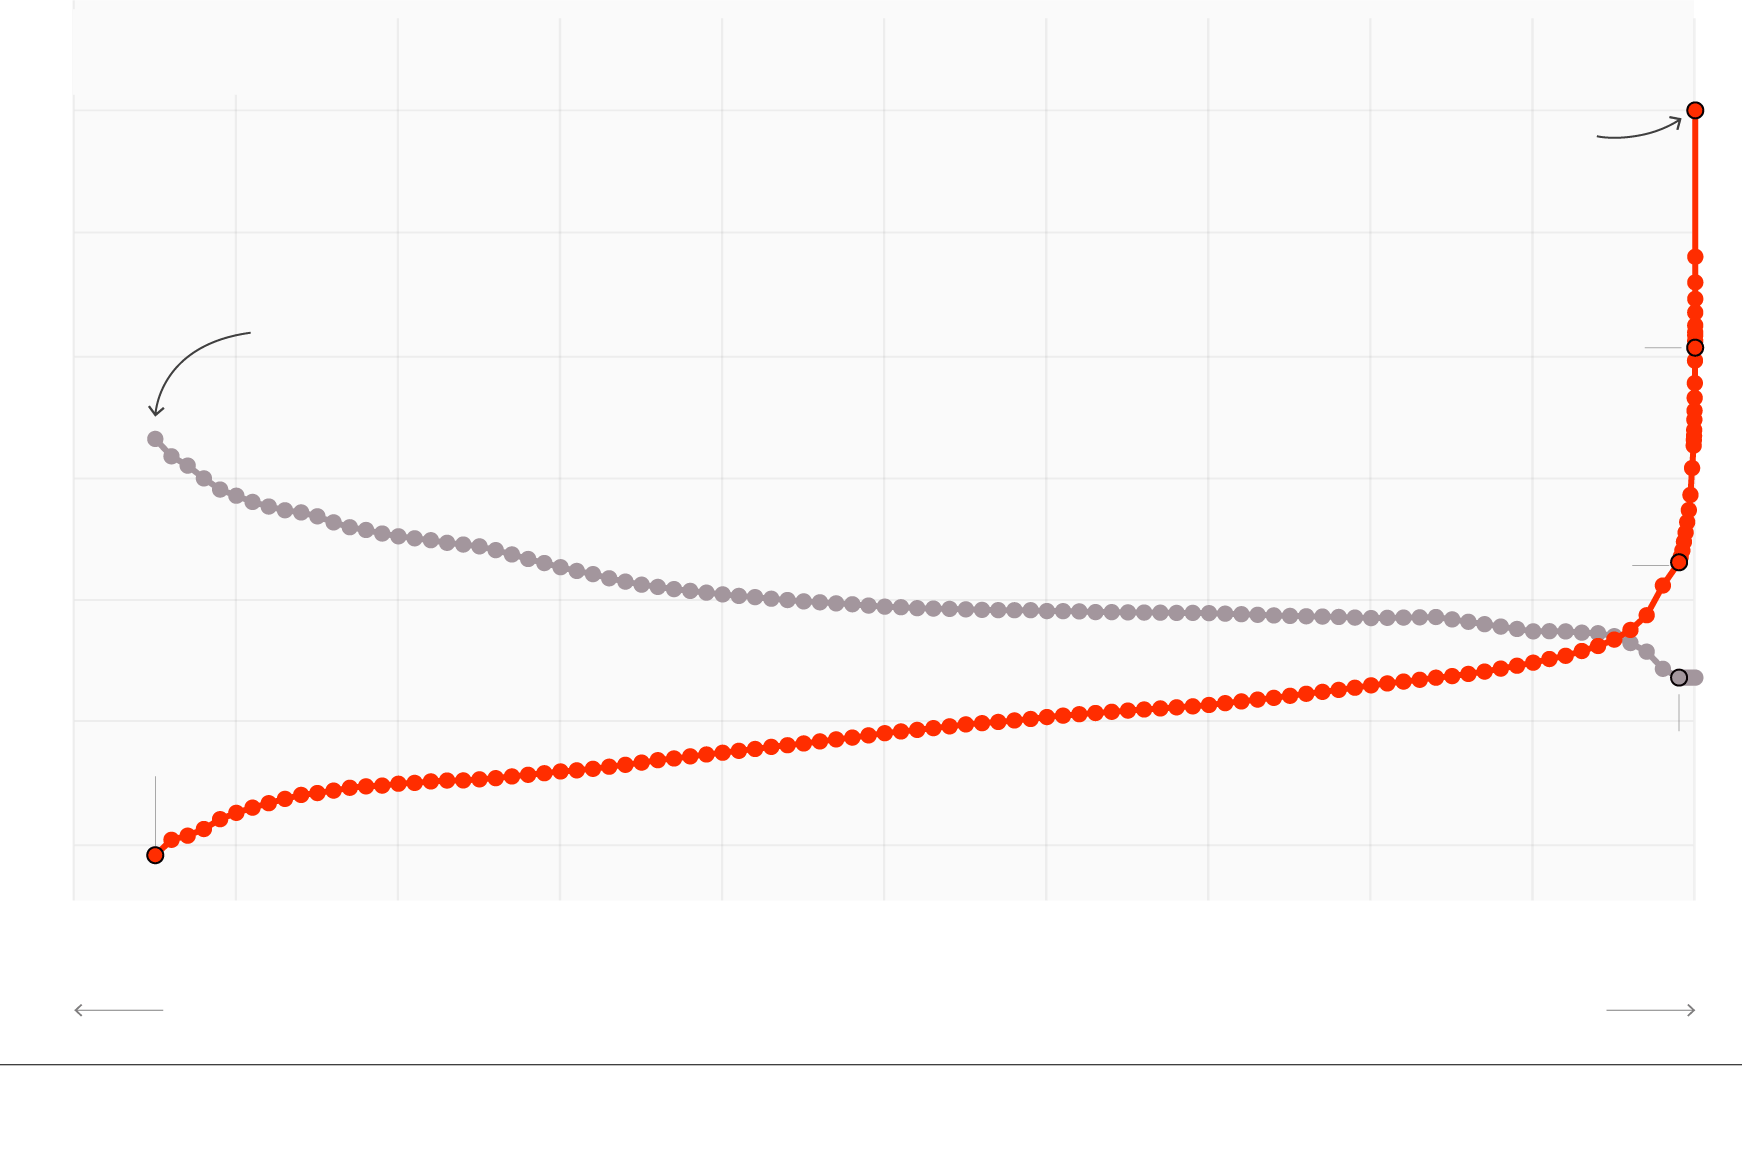 Opinion Our Broken Economy In One Simple Chart Chart Inequality Graphing